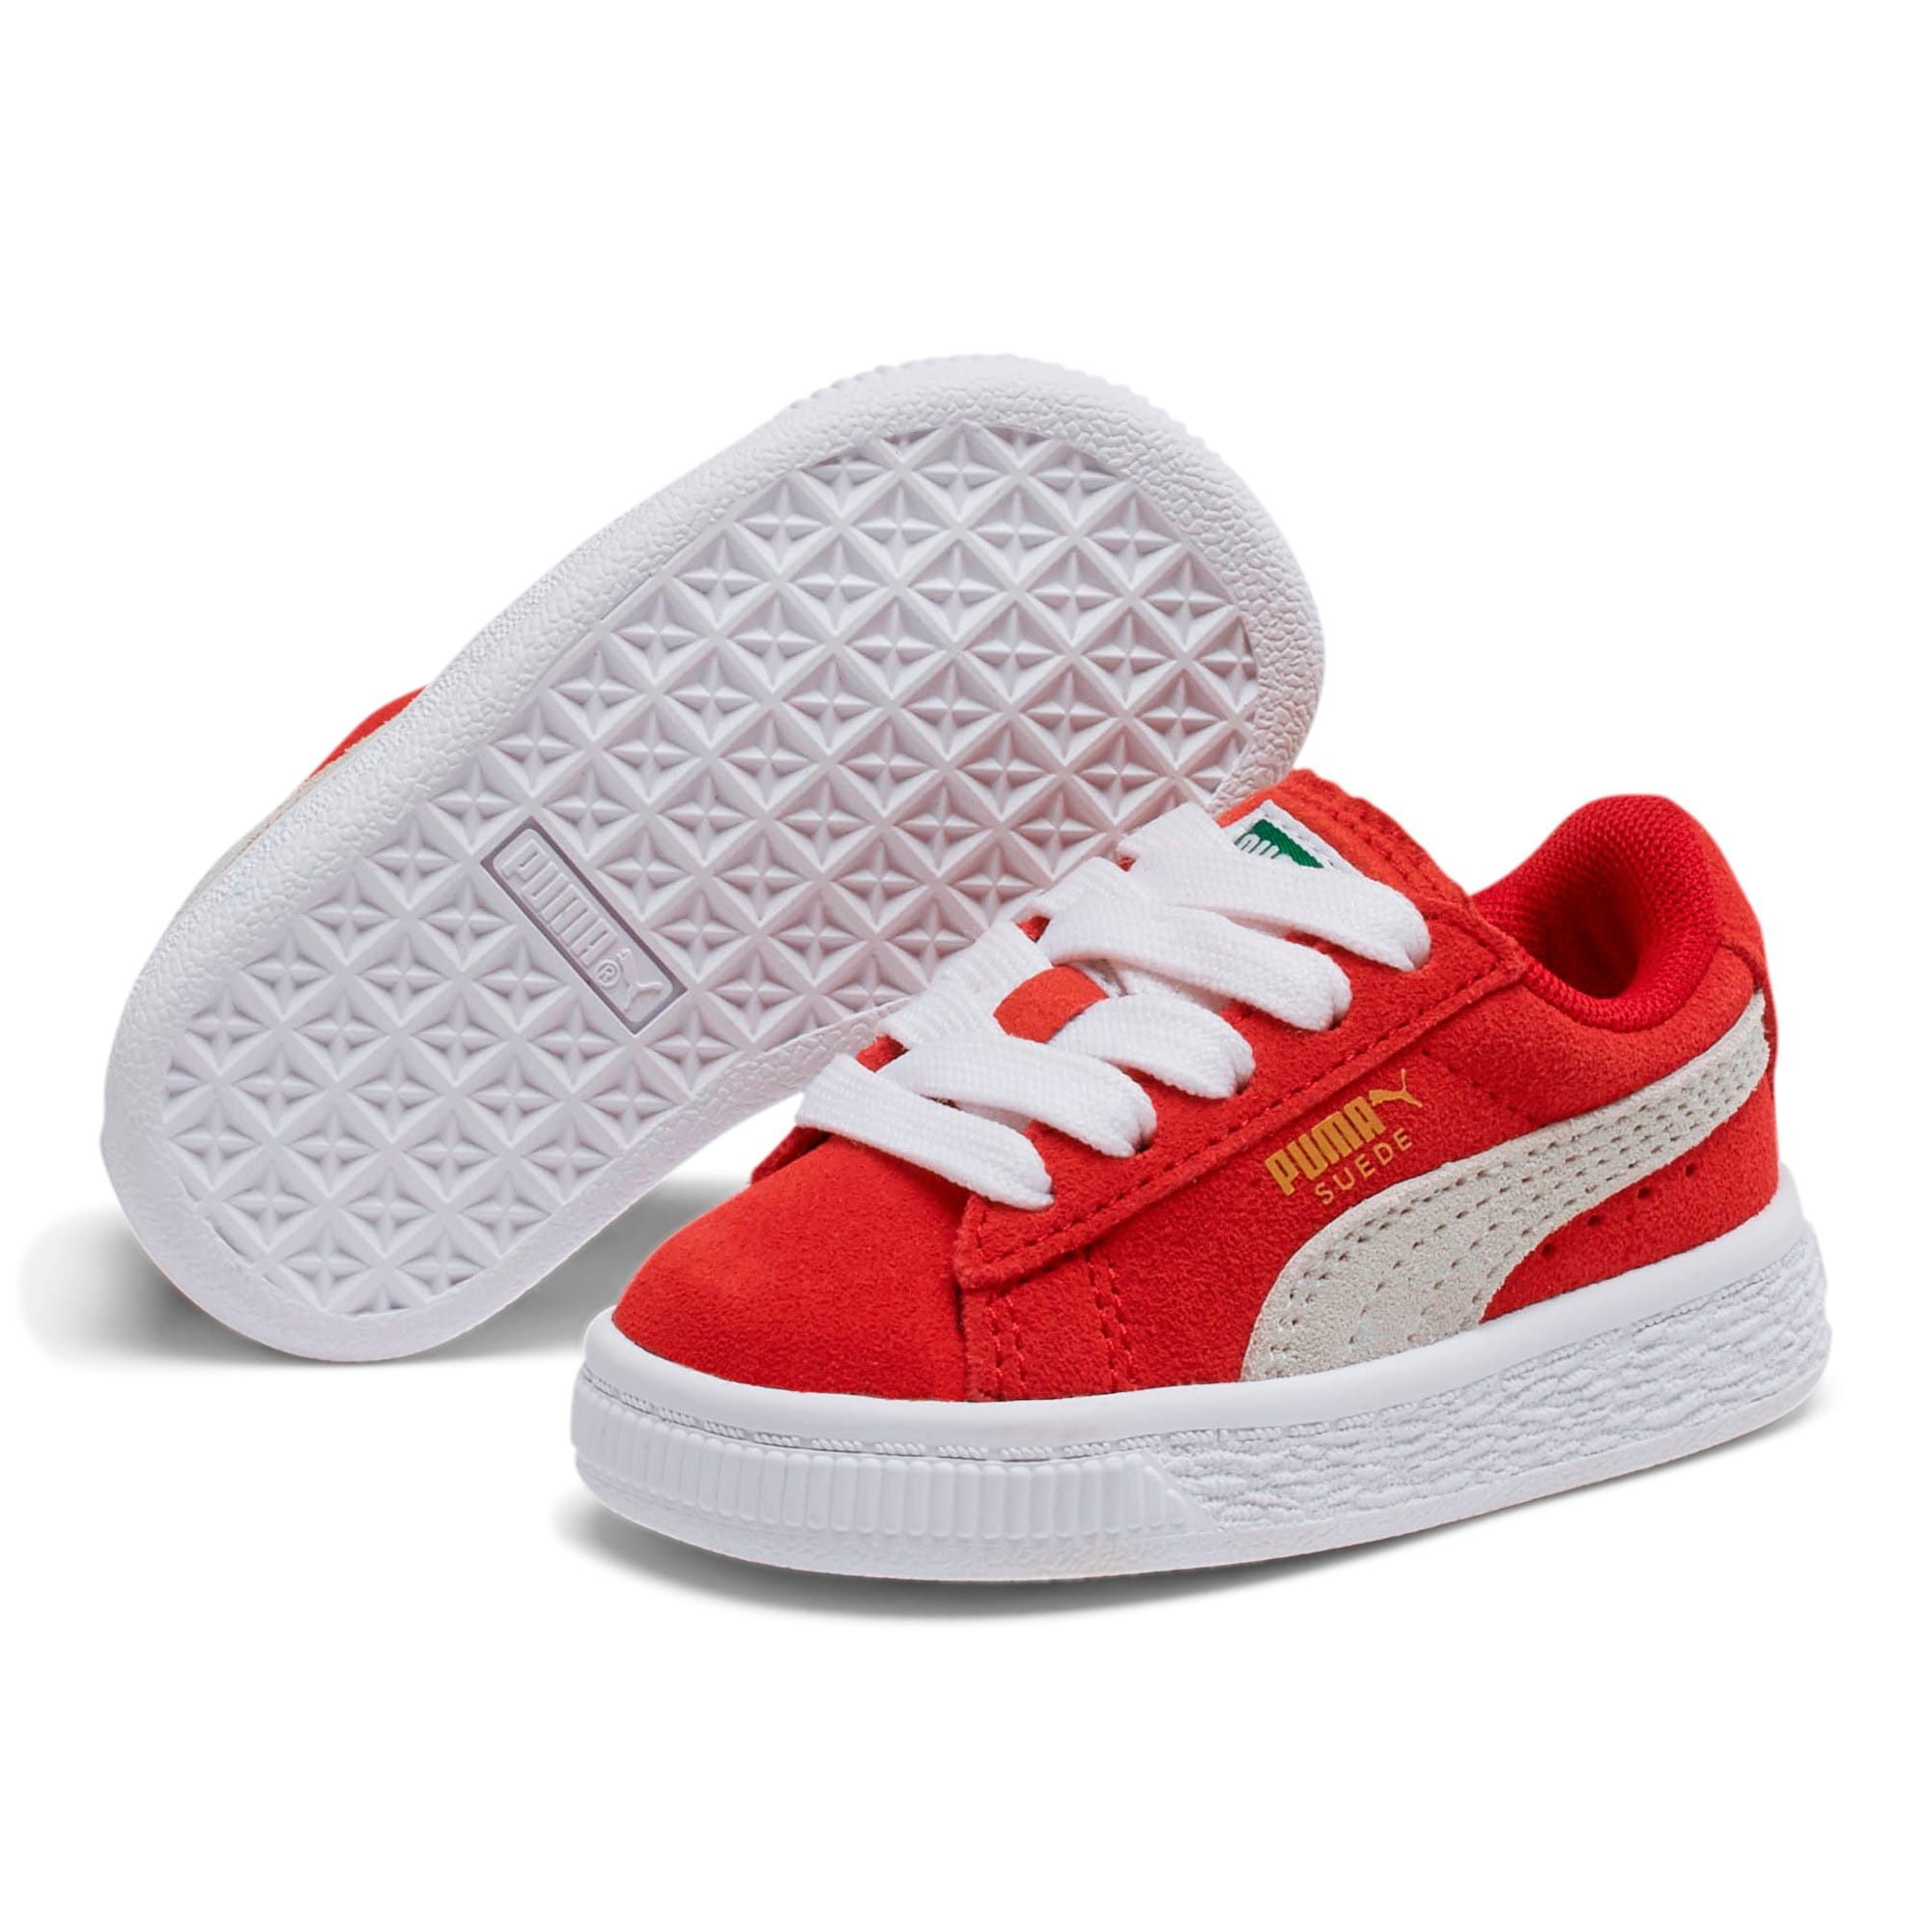 Miniatura 2 de Zapatos Puma Suede para bebés, high risk red-white, mediano